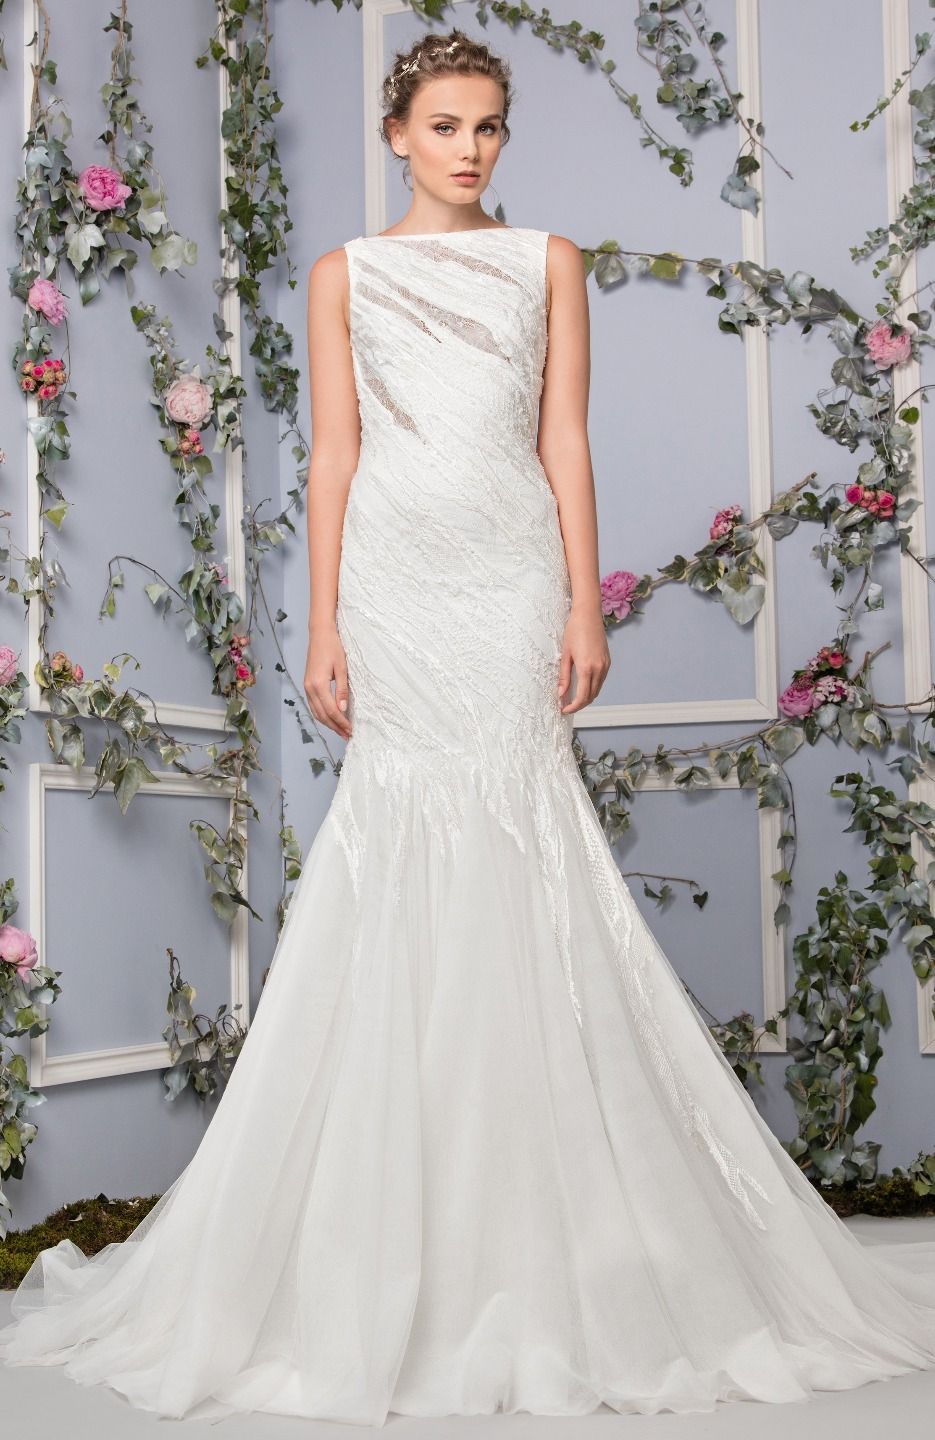 Trendy Mermaid Wedding Dress | Kleinfeld Bridal